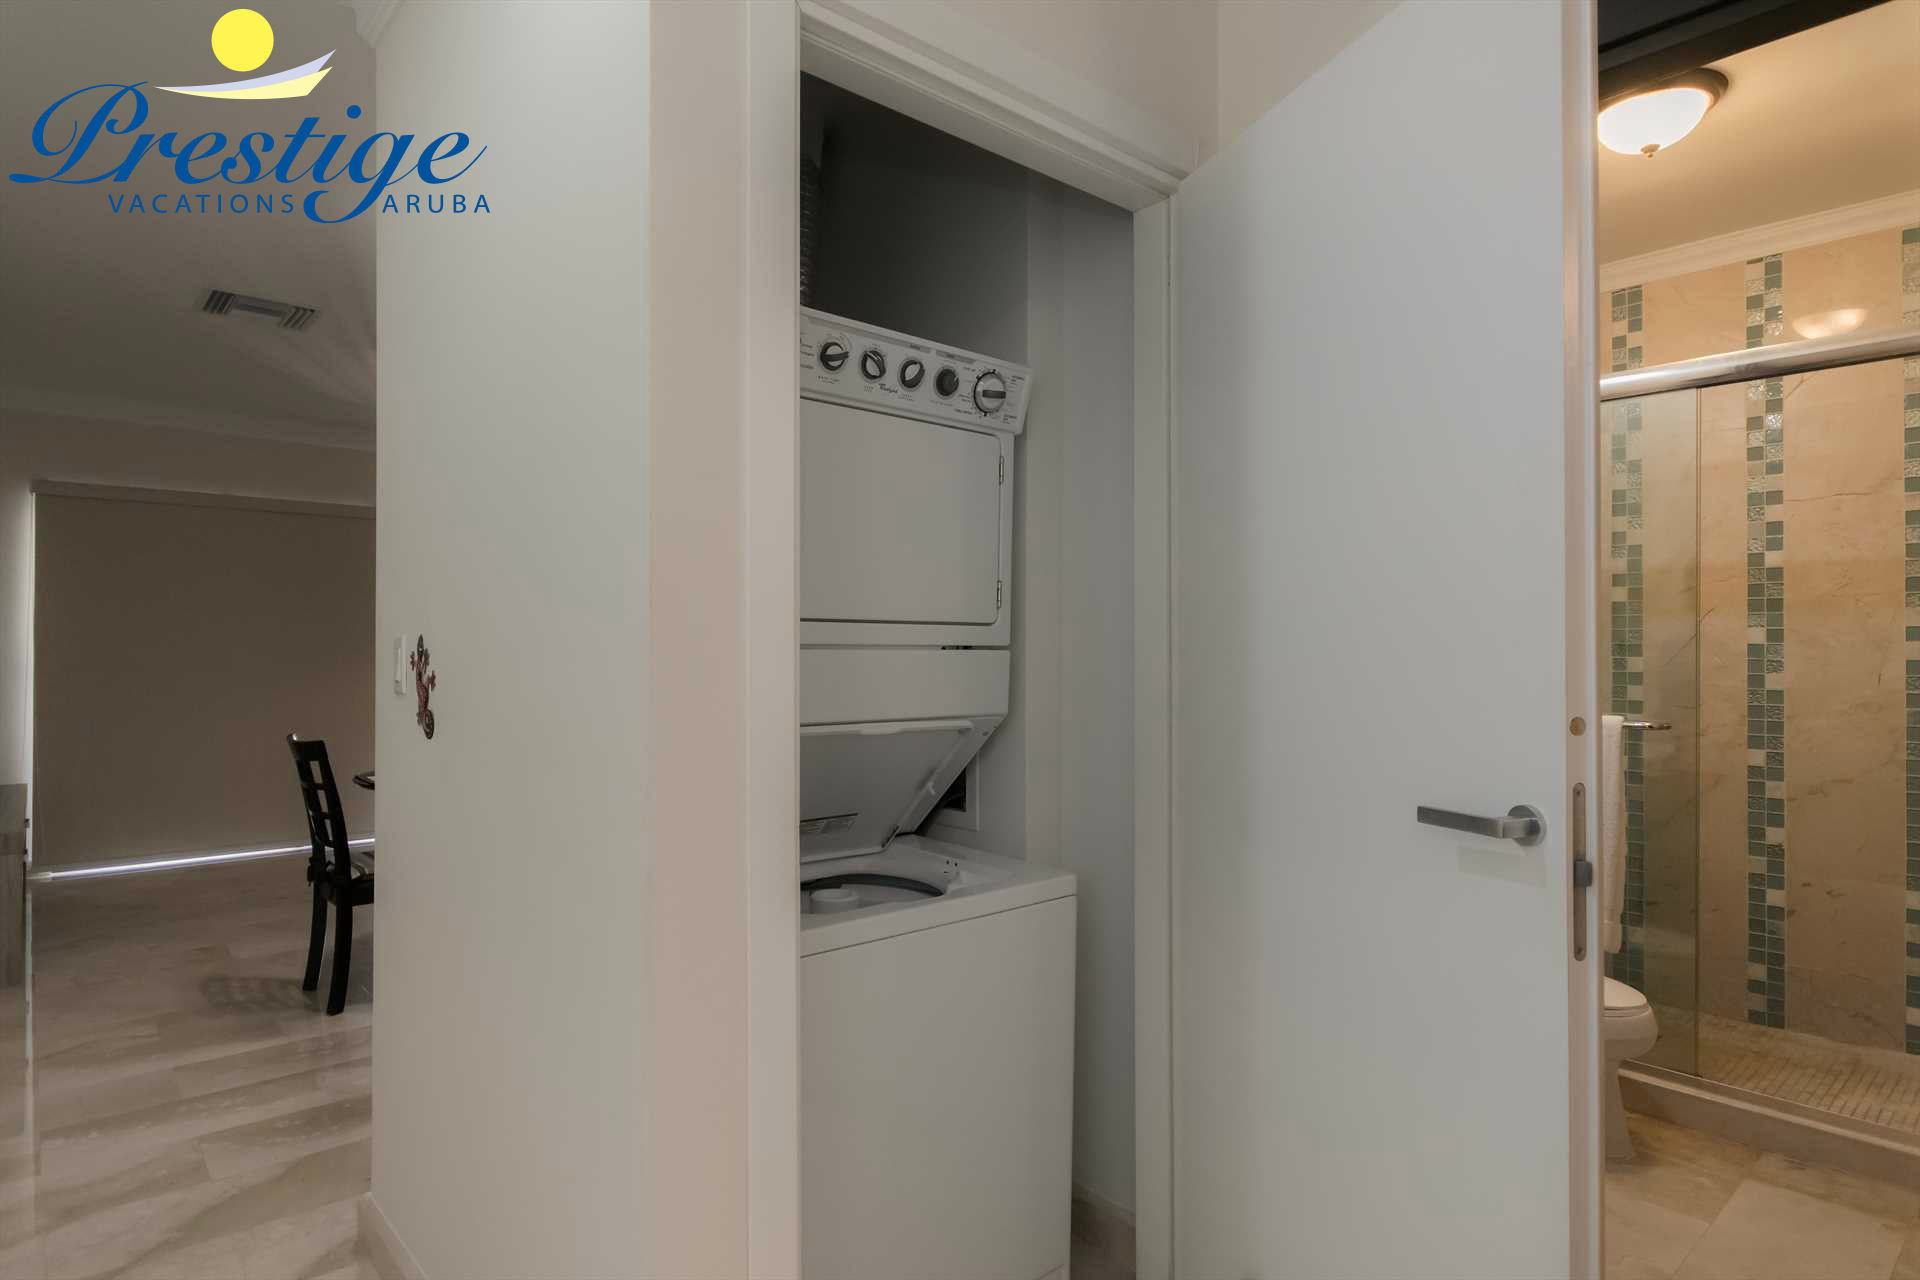 In-room washer and dryer available